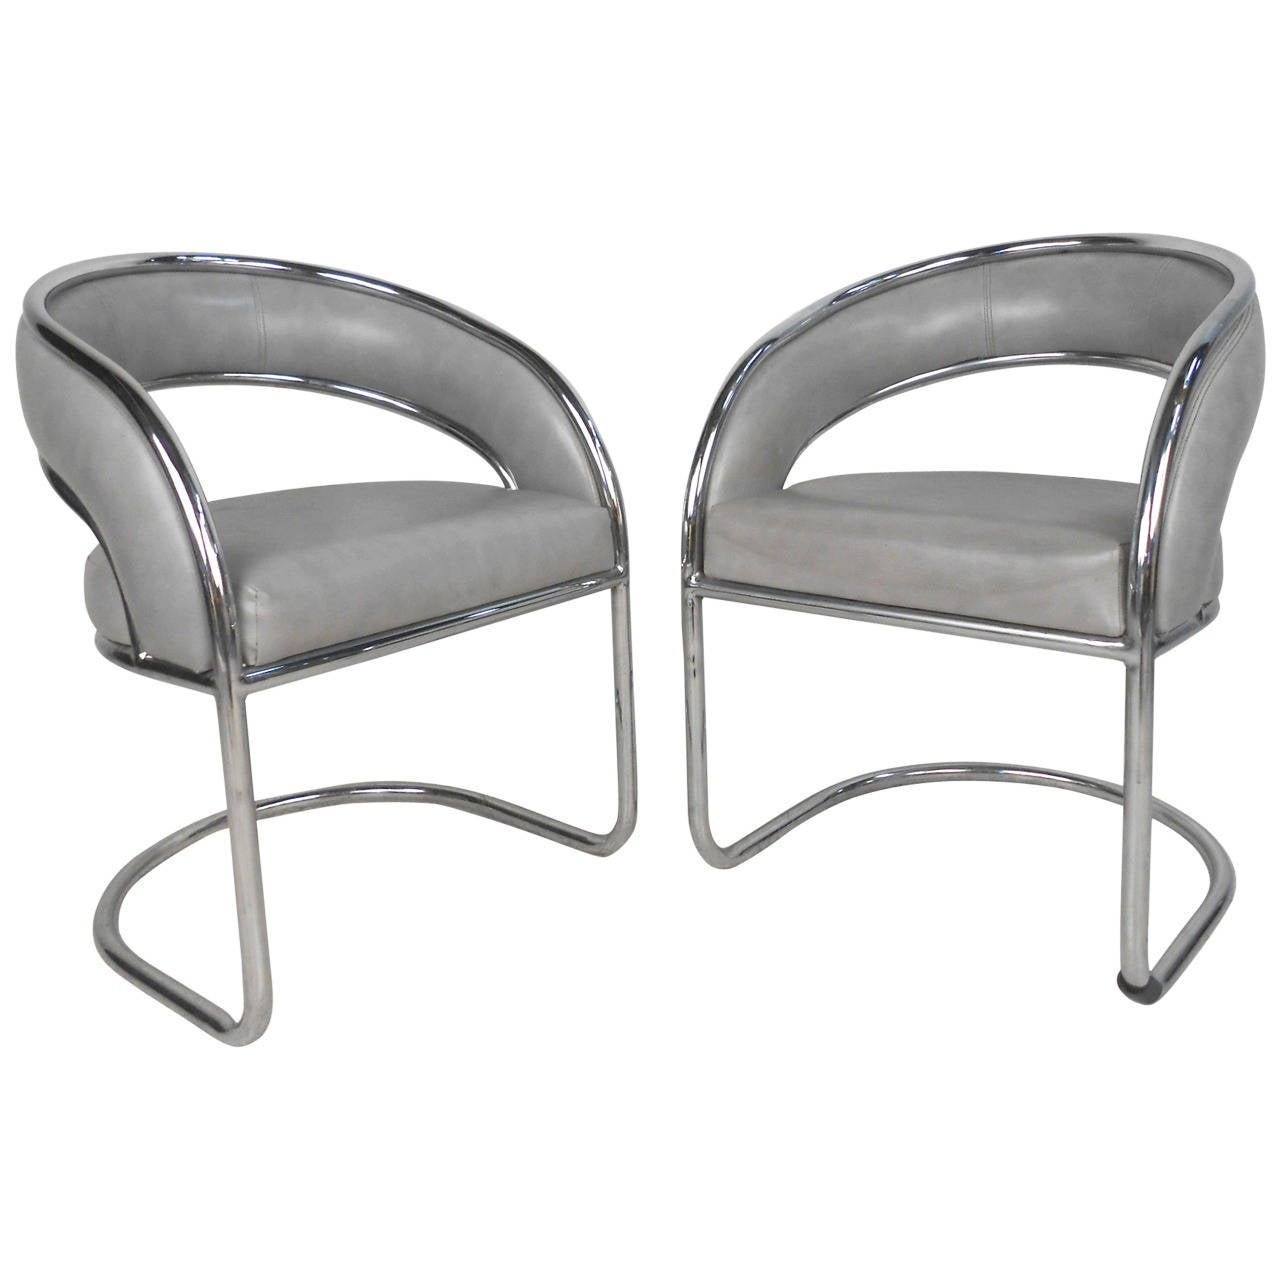 Set Of Unique Mid Century Modern Cantilever Dining Chairs By Thonet For